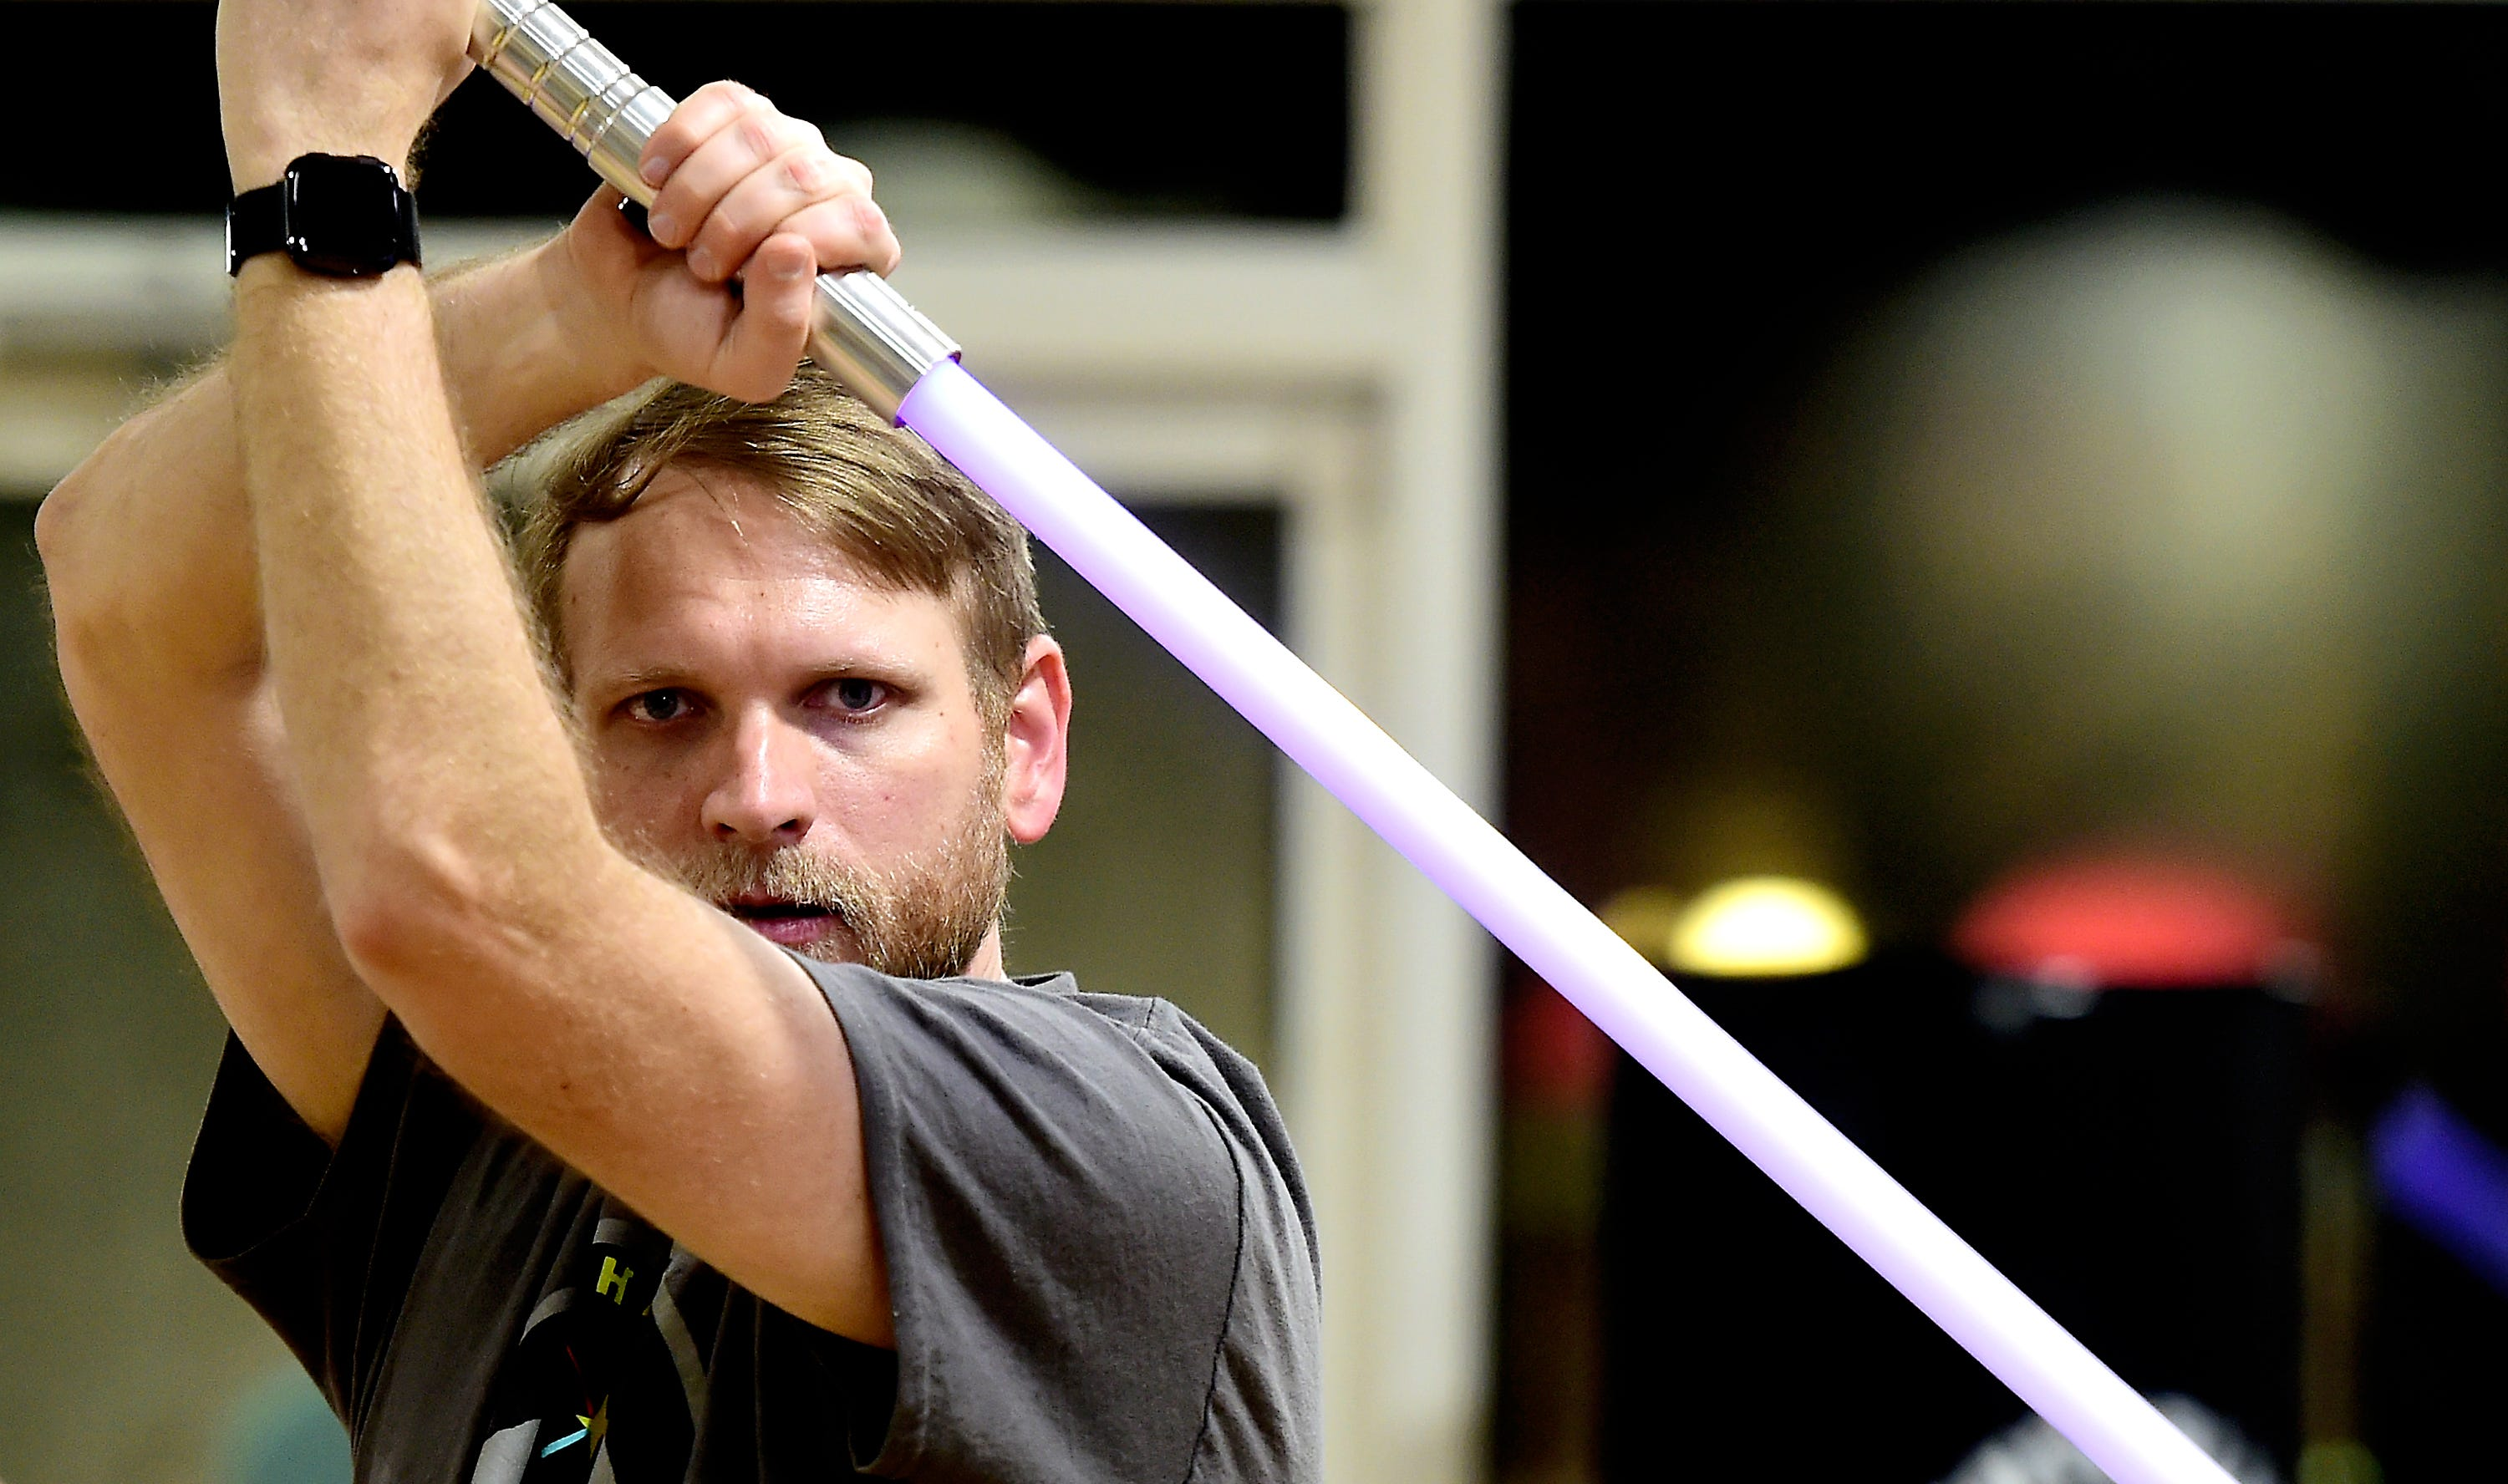 Terry Gray of Lansing during the weekly meeting of the Ithaca Sabers lightsaber combat group at Centerline Fitness & Martial Arts in Ithaca.  February 4, 2019.